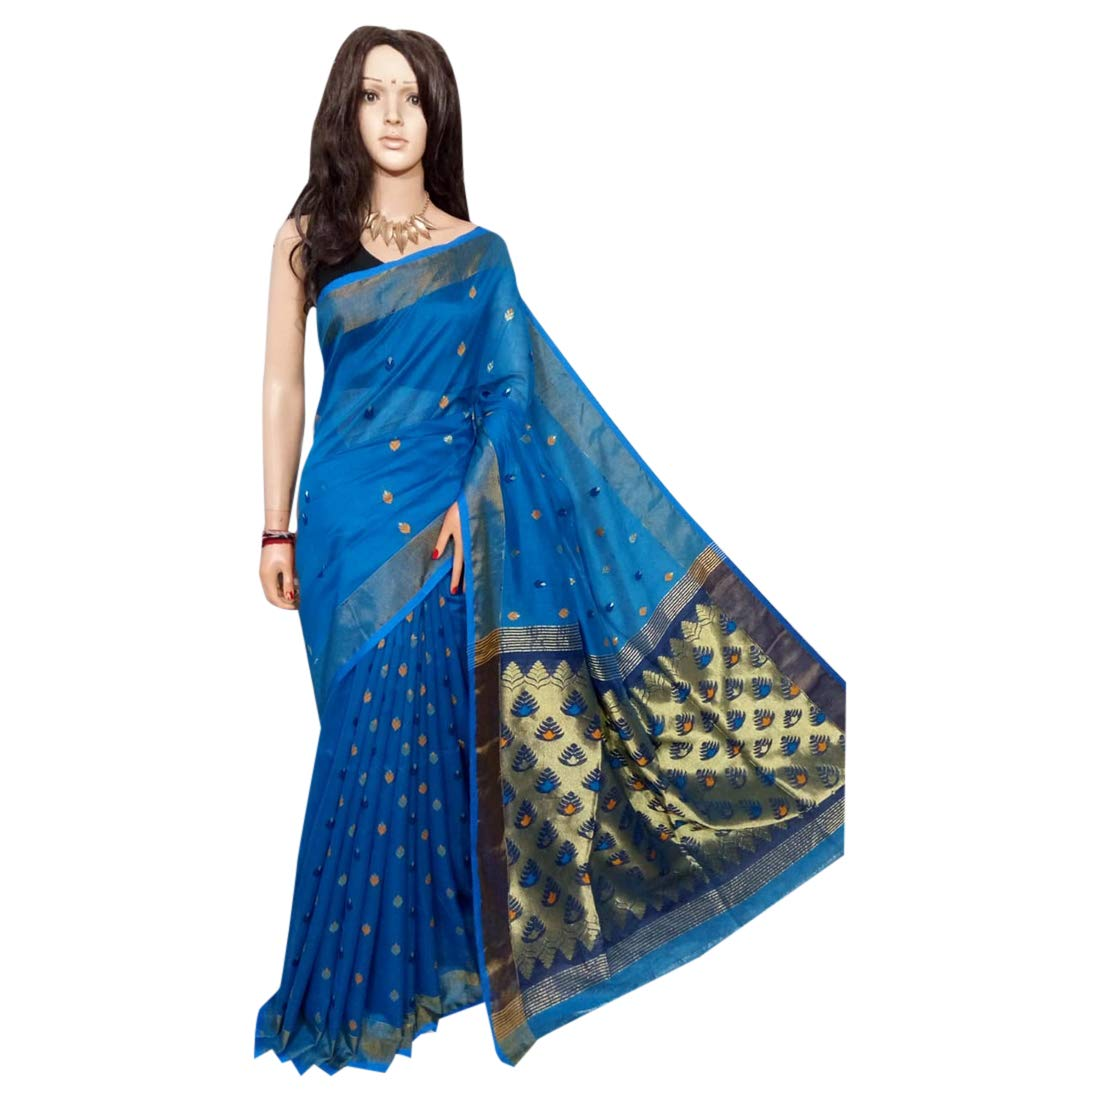 Indian Saree bluee Ethnic dhakai jamdani Sari Designer Collection Sari Party Formal Women Wear 105a